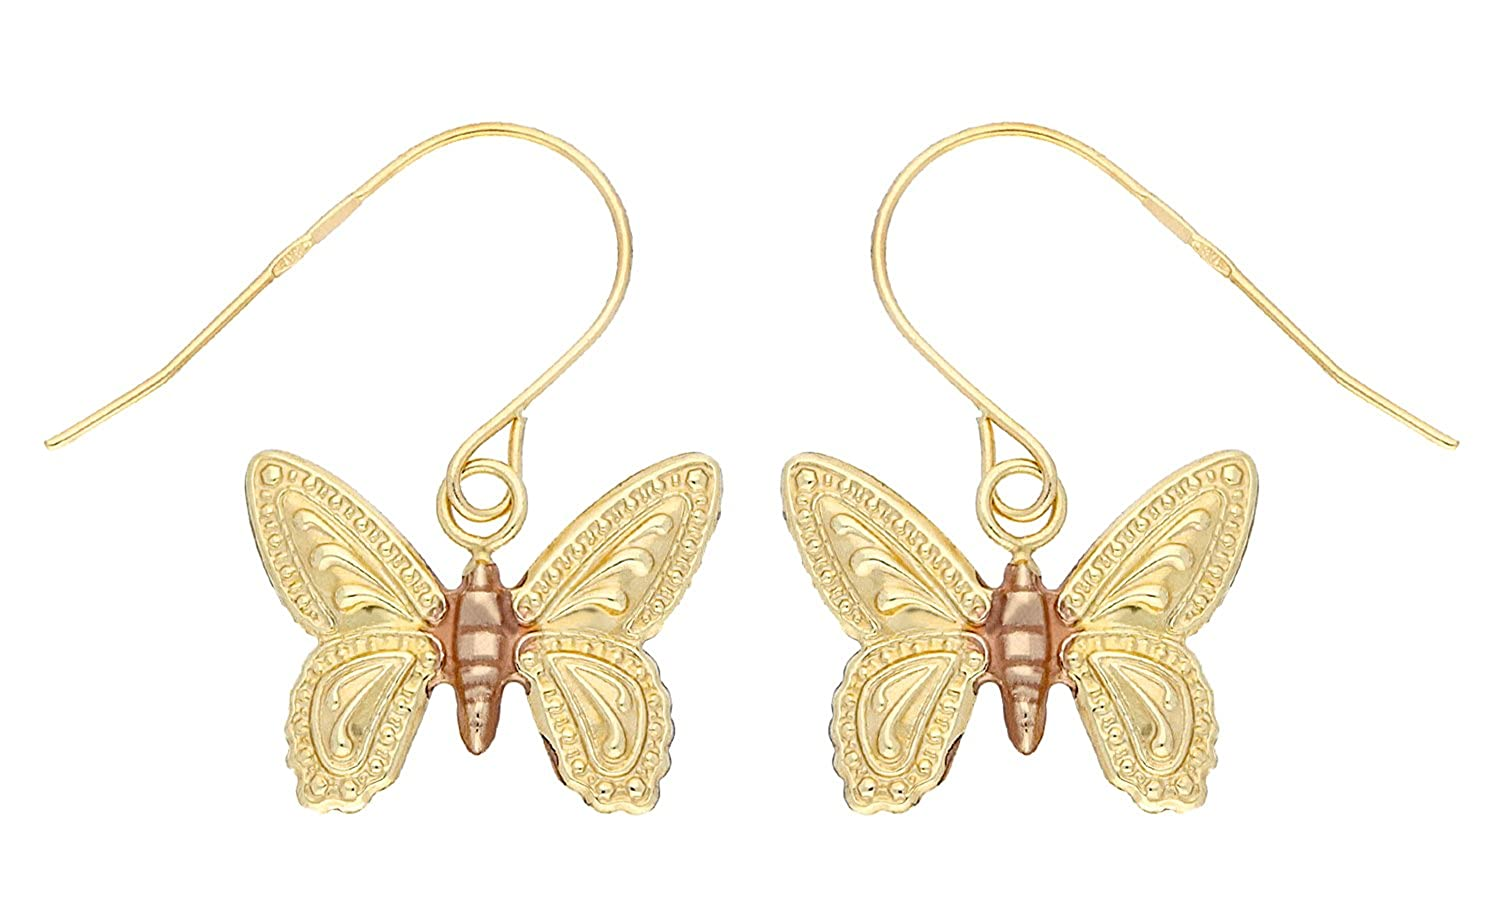 Adara 9 ct Yellow/Red/White Gold Diamond Cut Butterfly Drop Earrings hPUetZ8